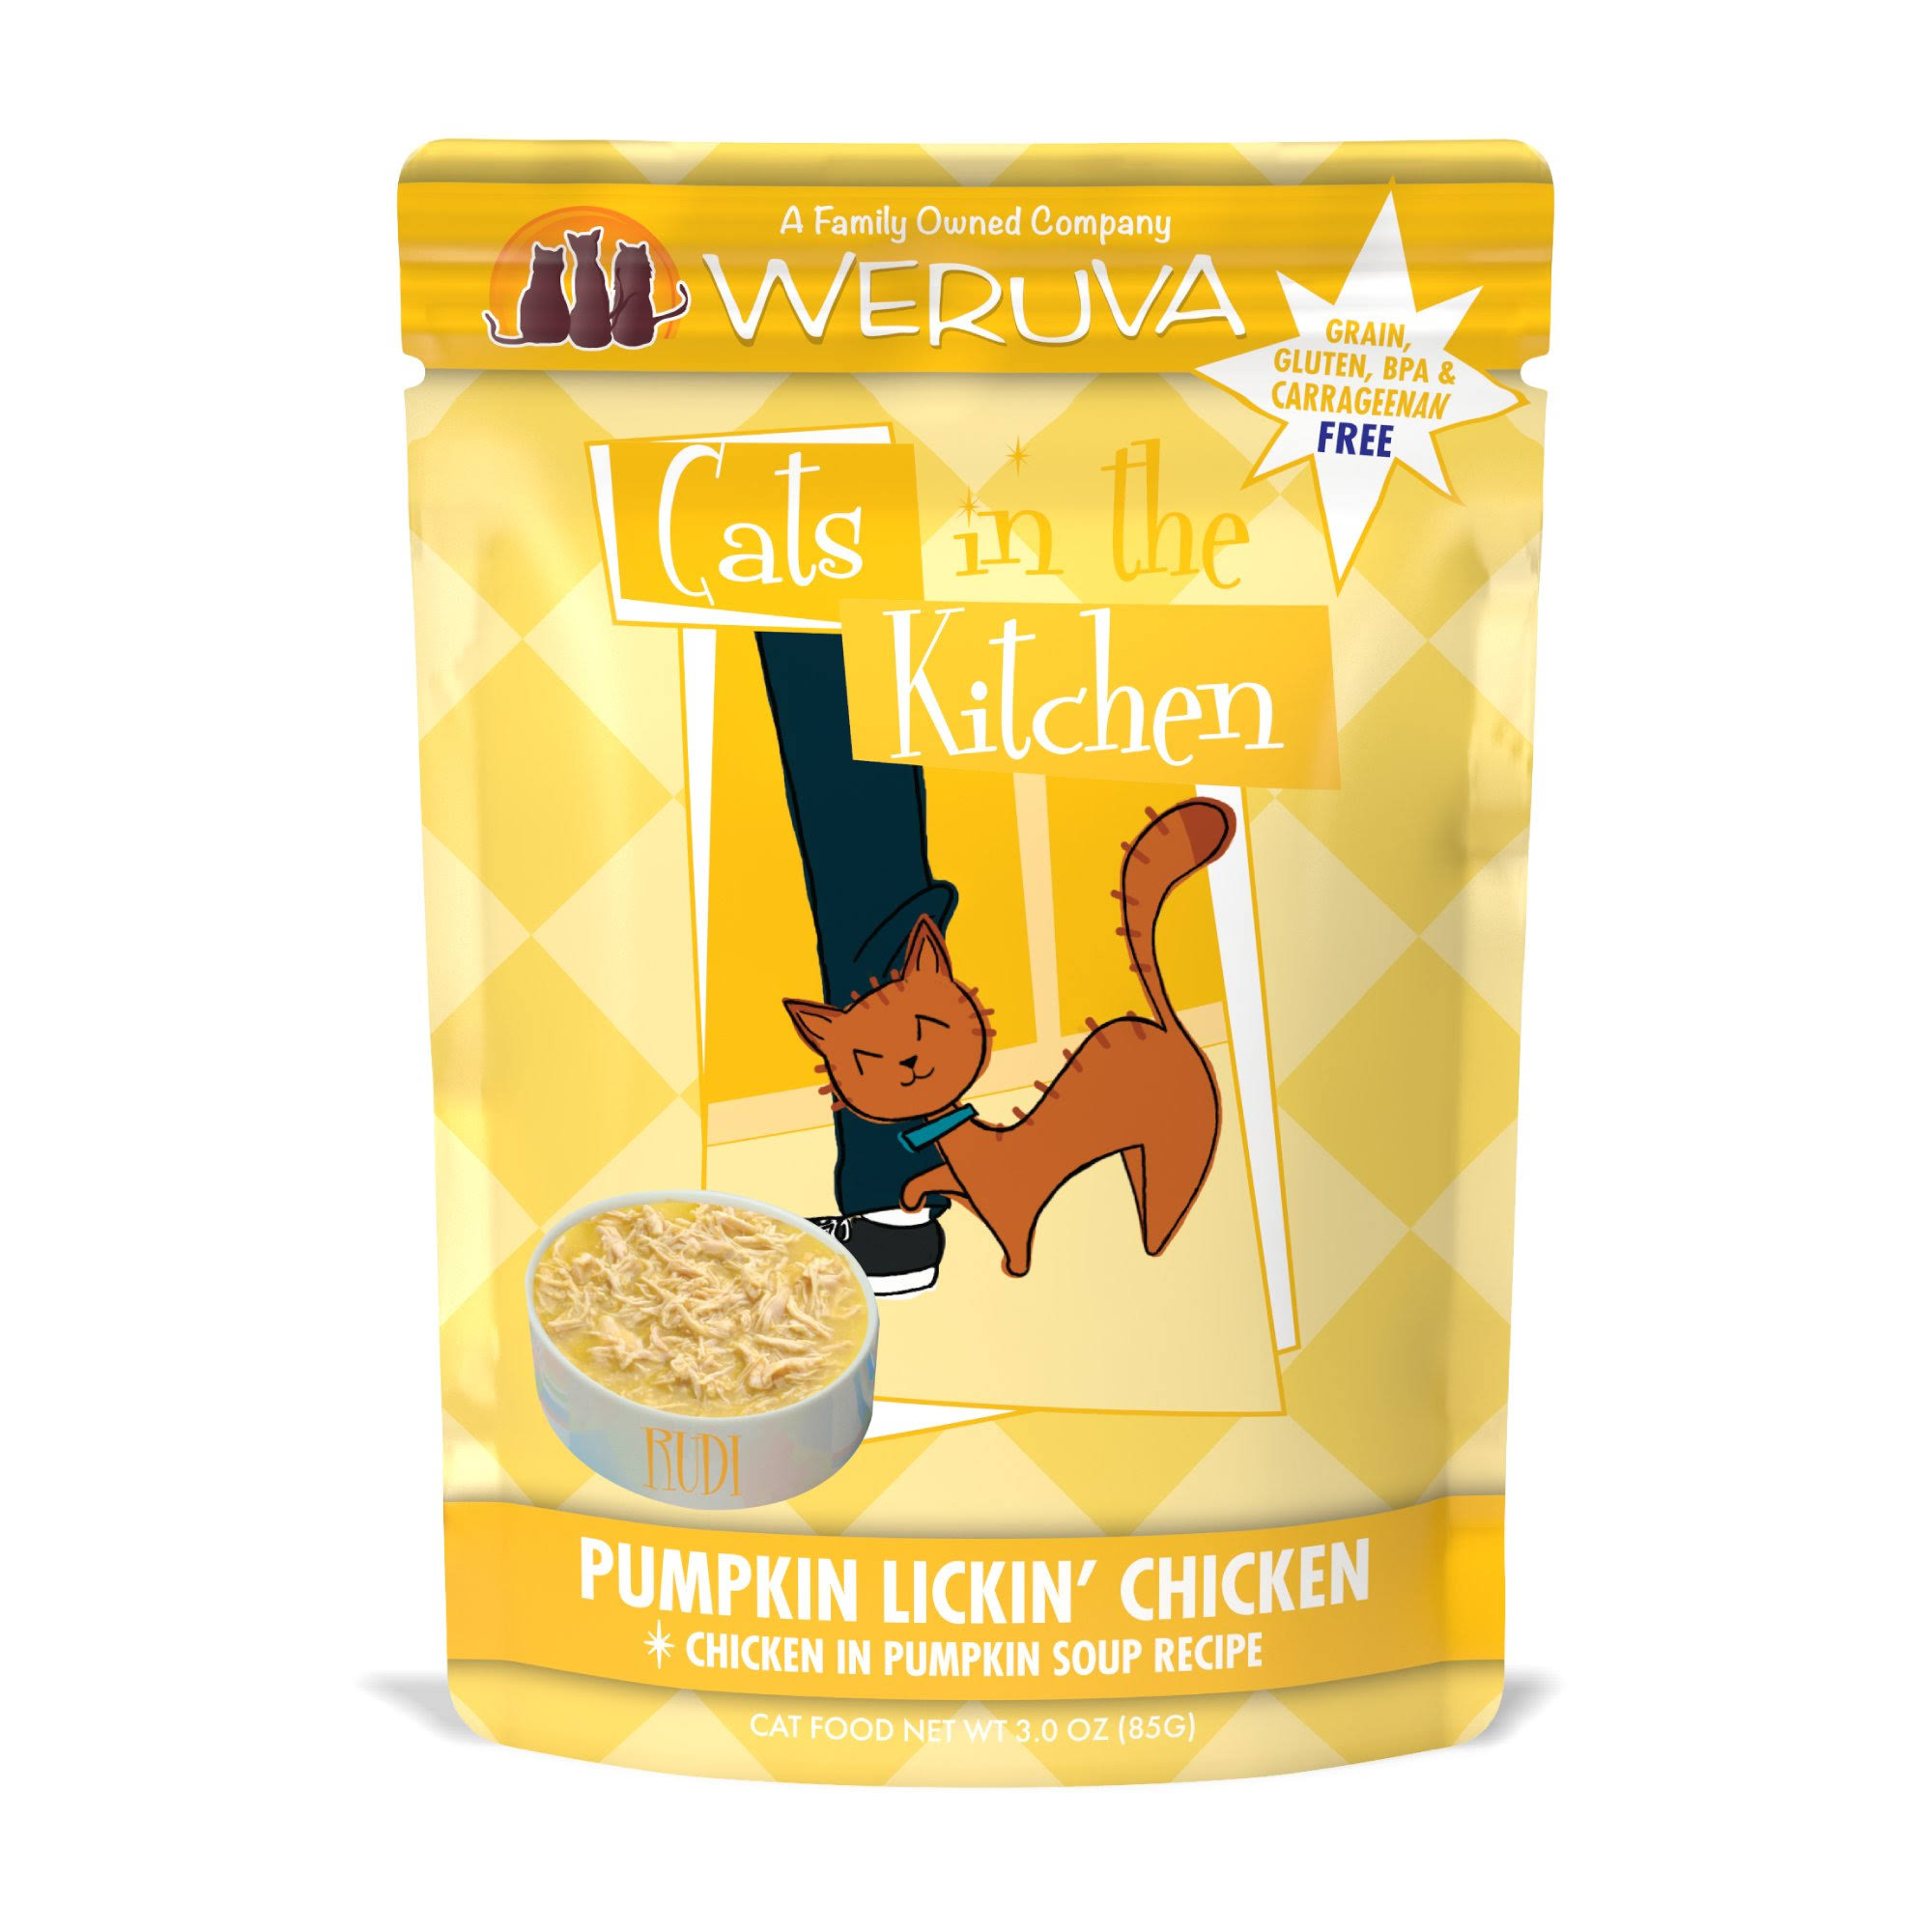 Weruva Cats in The Kitchen Pumpkin Lickin Chicken Pouches Wet Cat Food - 3 oz, Case of 12